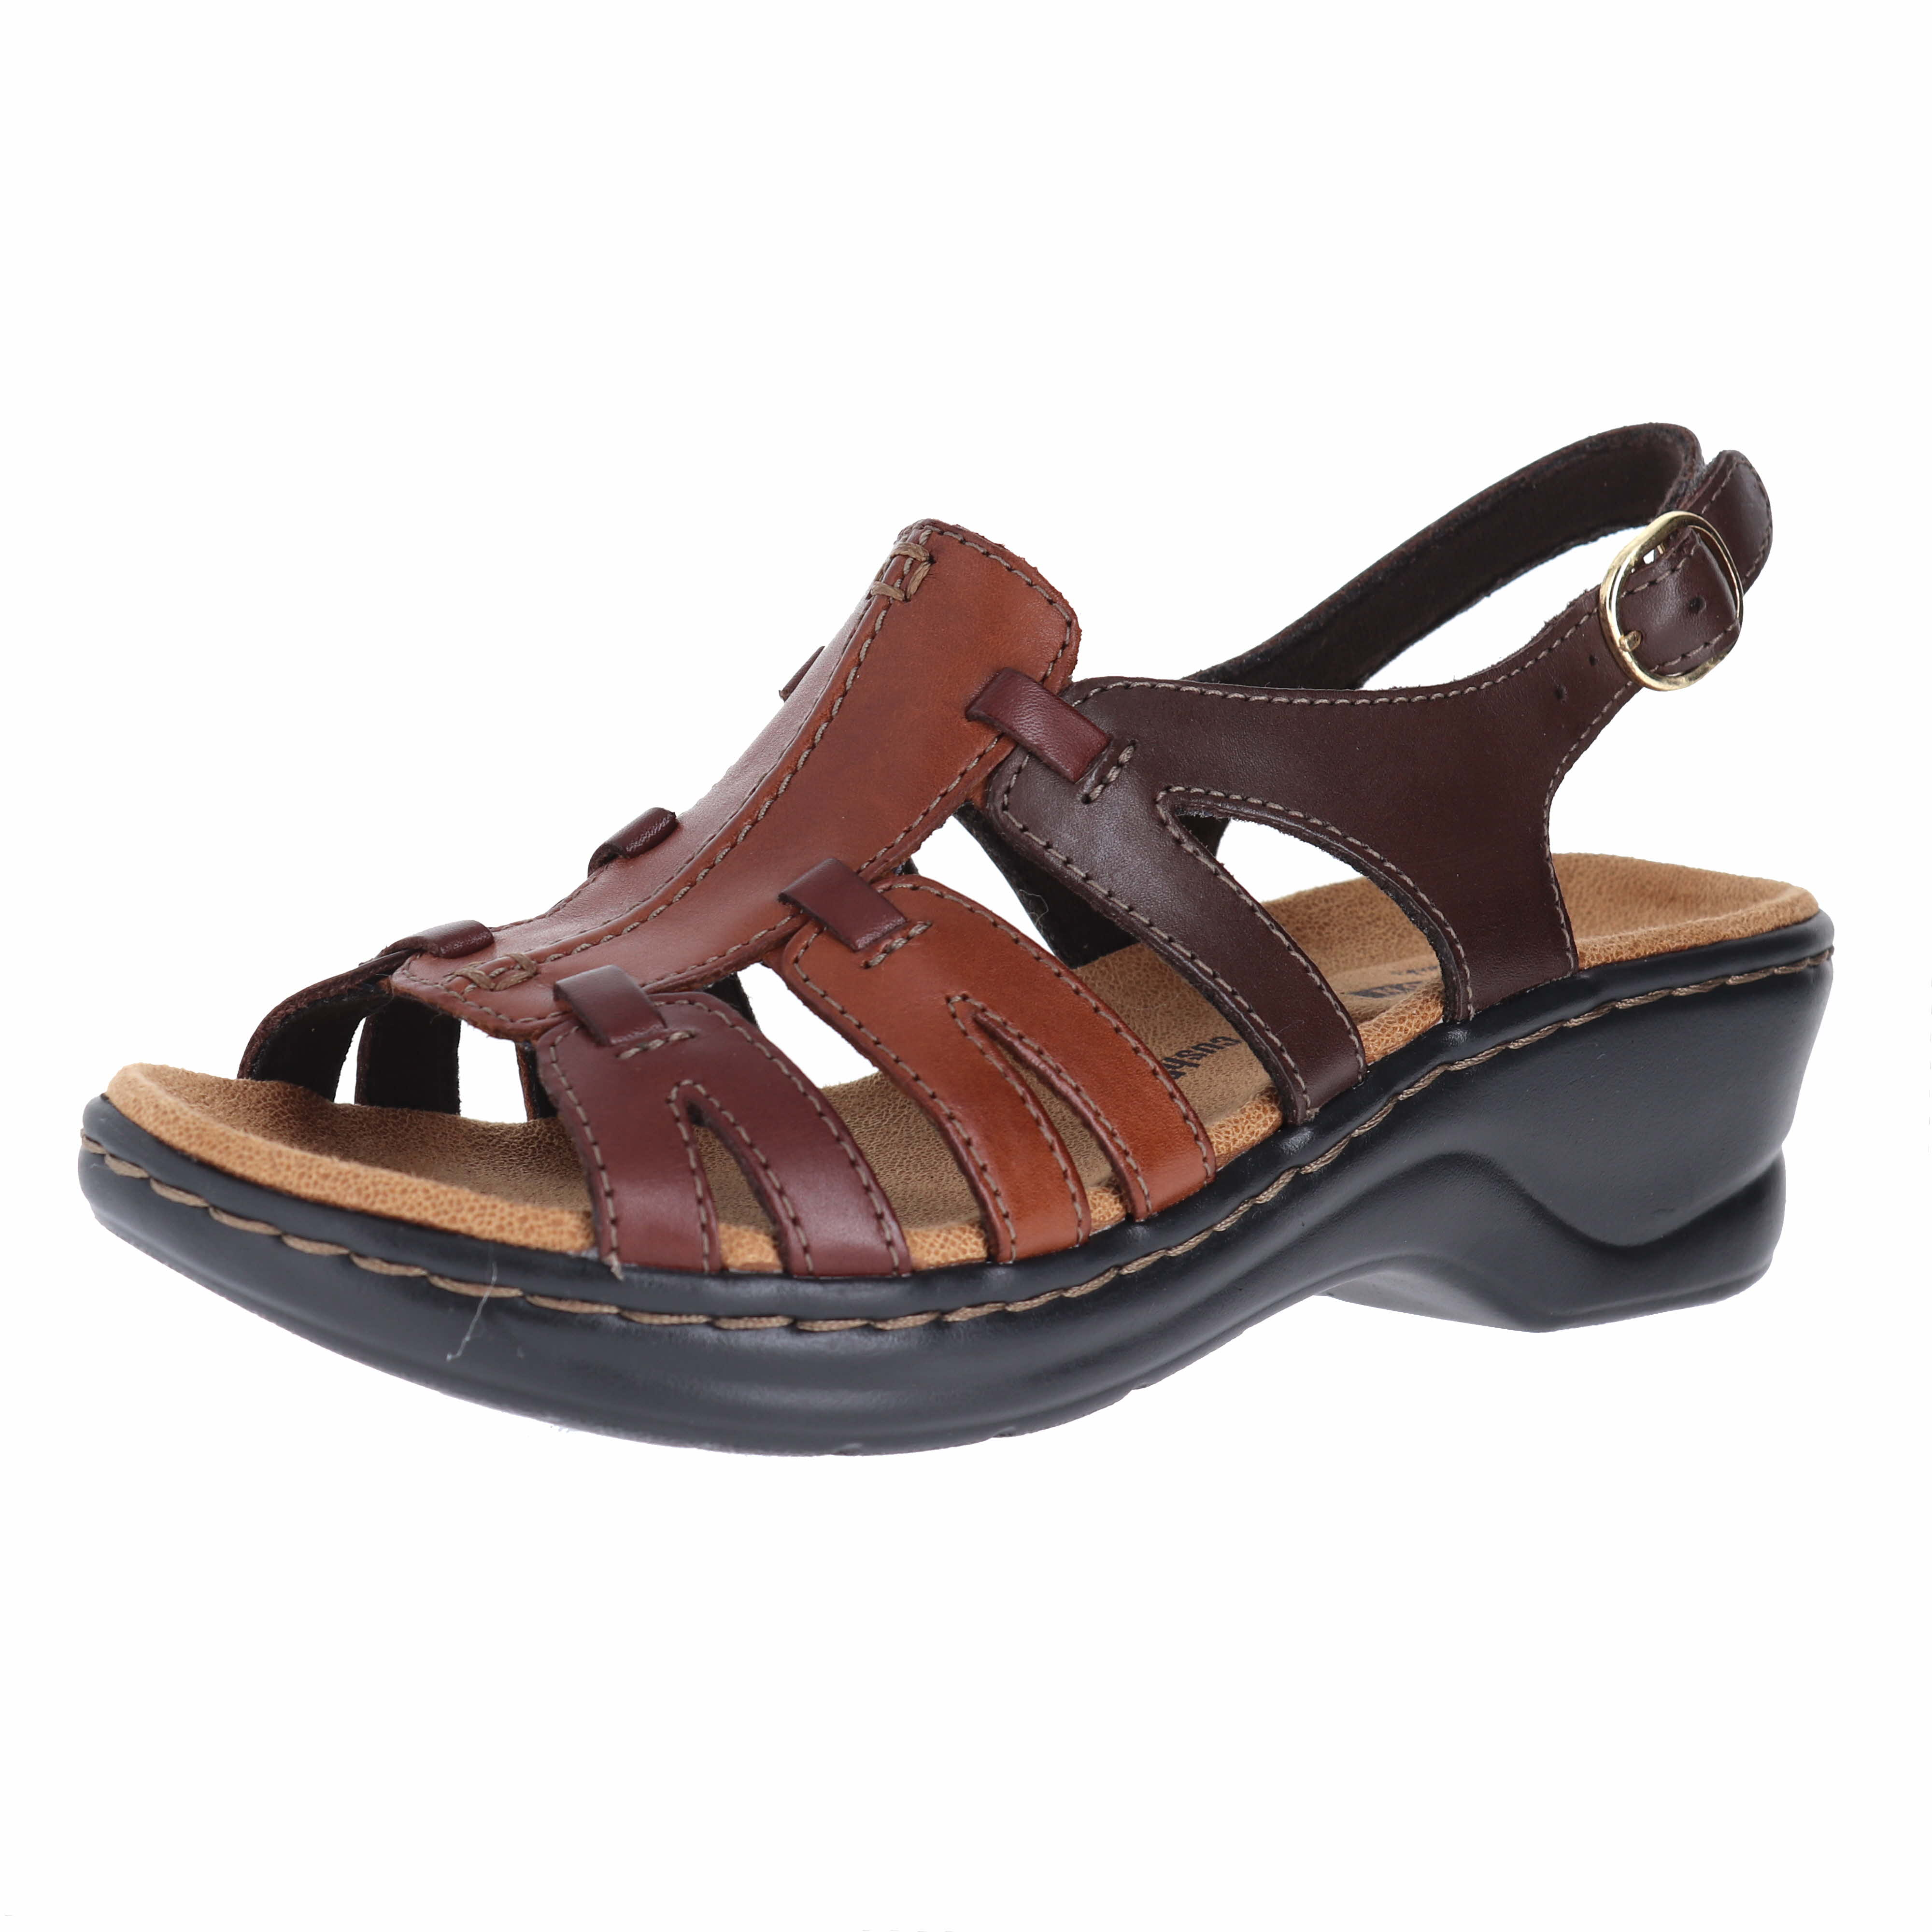 7ea84778bf0f Clarks Lexi Marigold Brown Multi Leather Womens Ankle Strap Size 9M ...